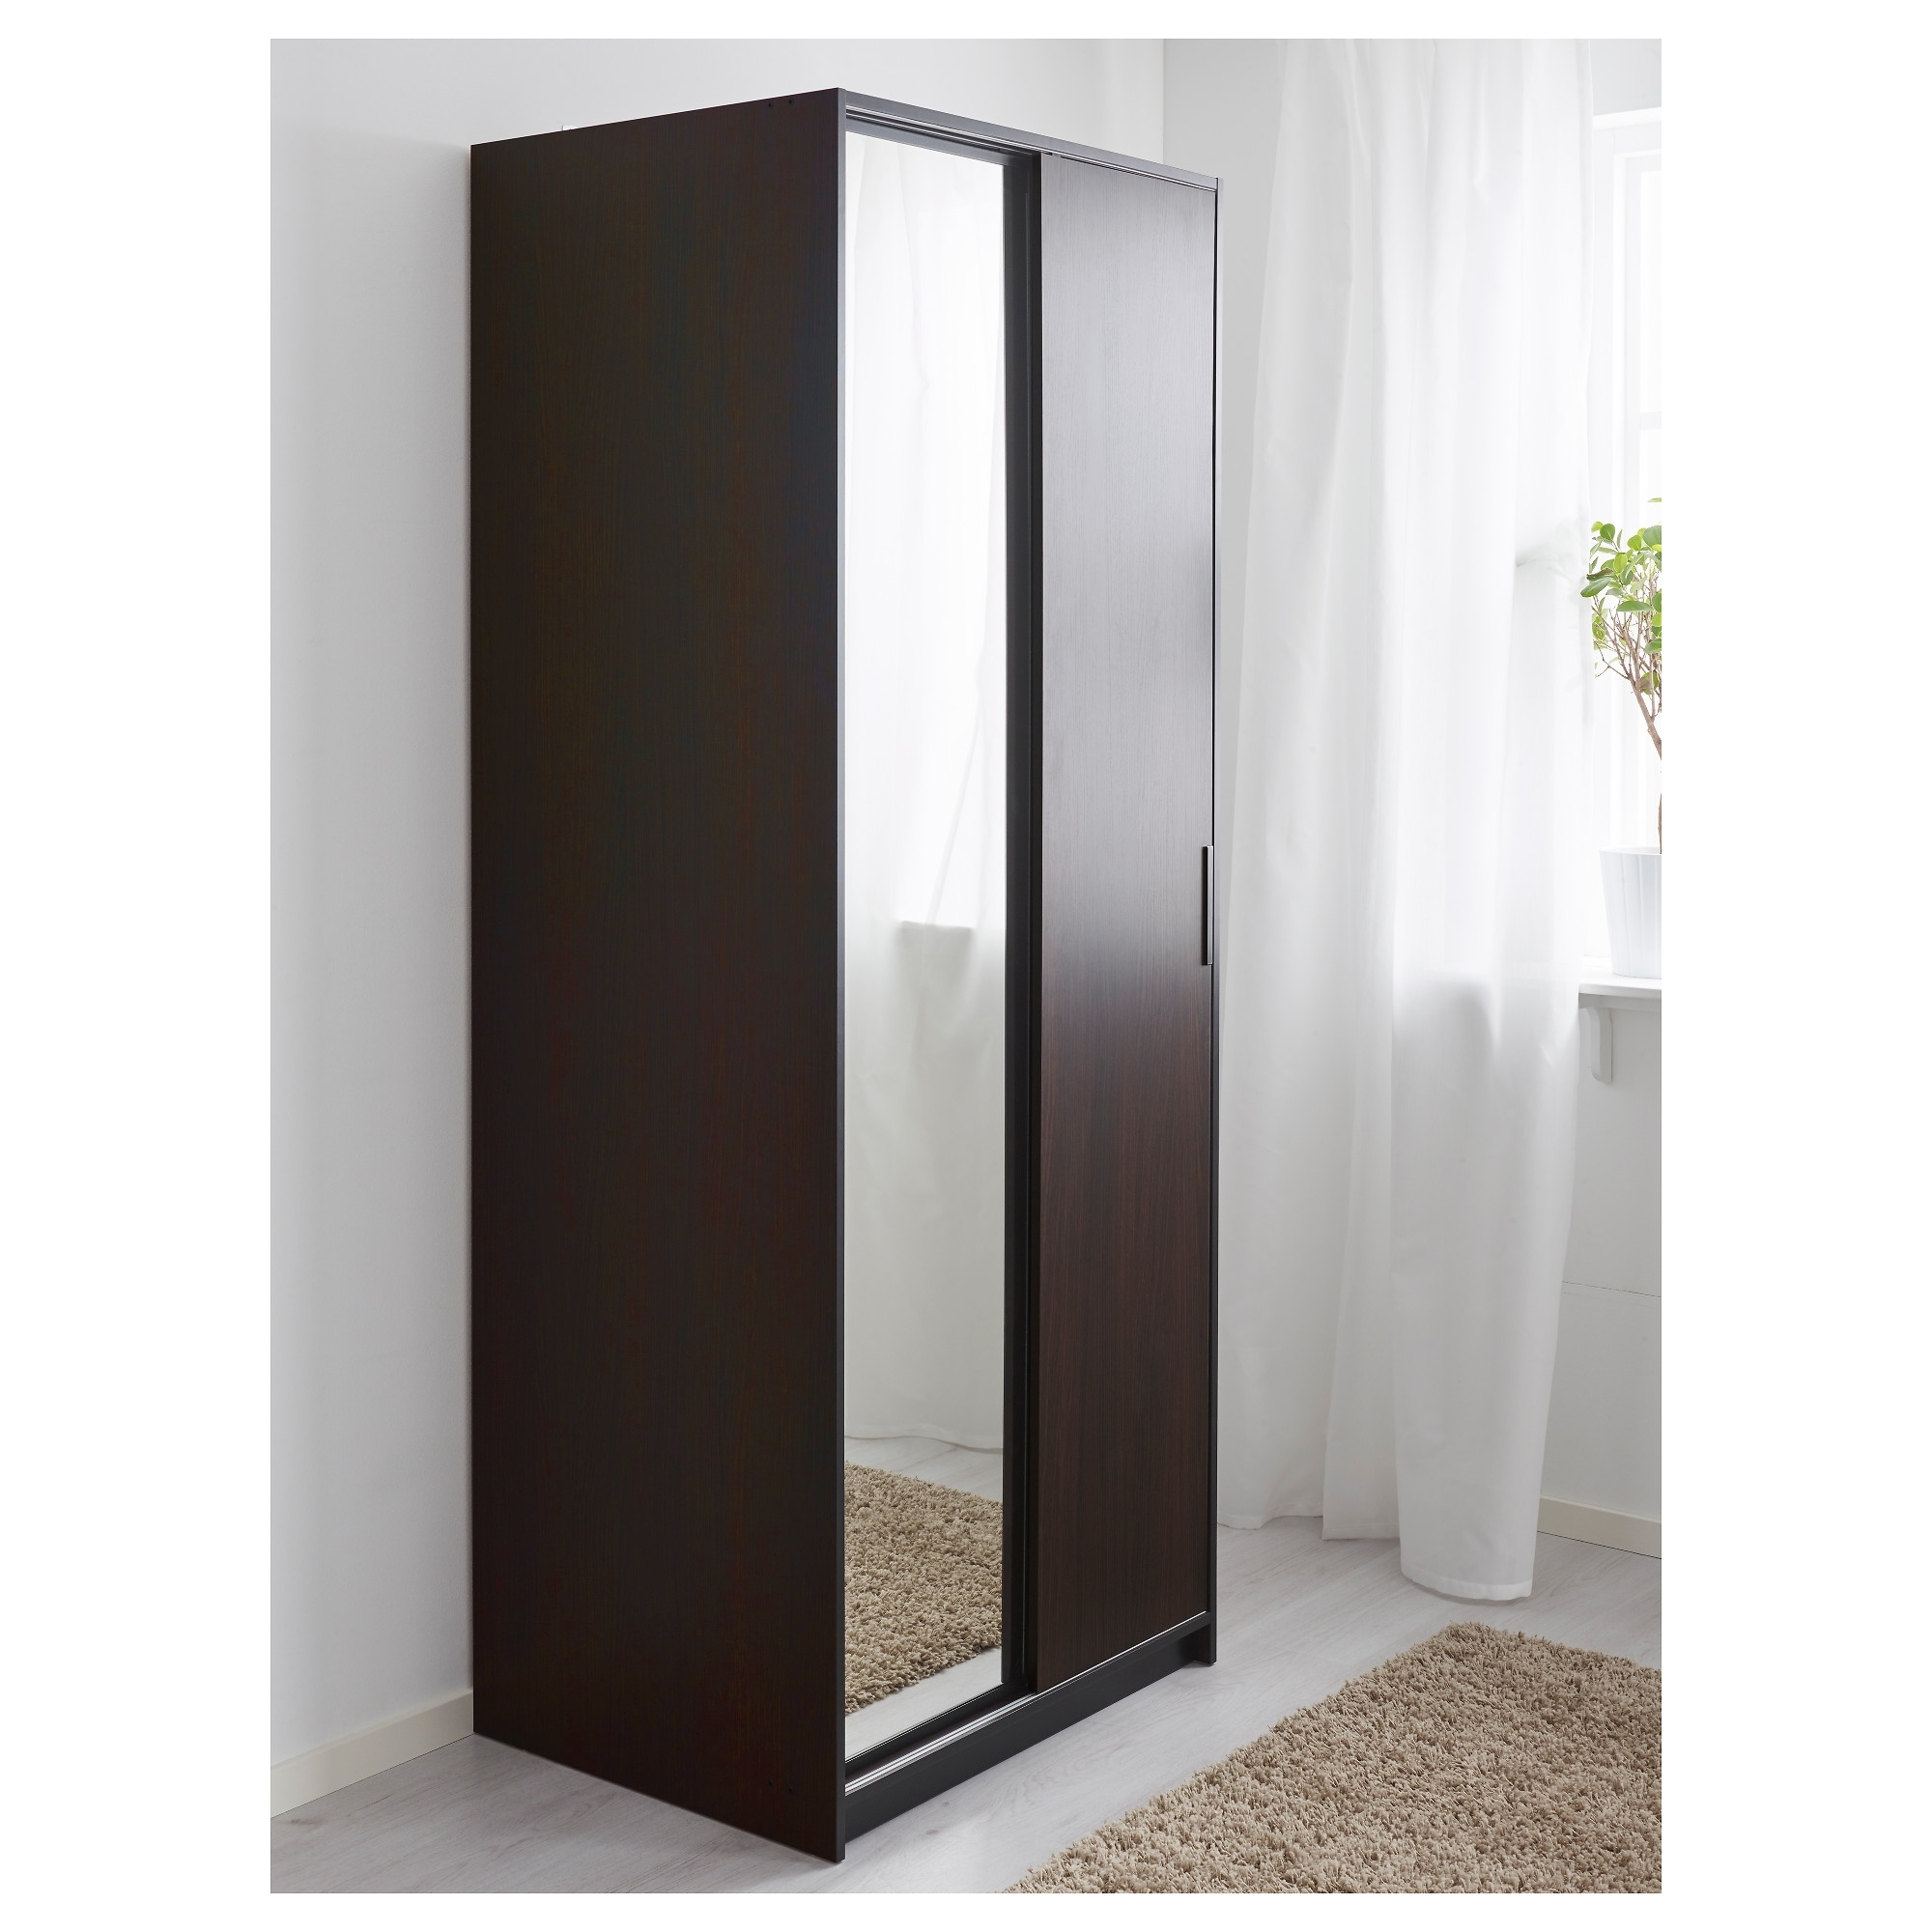 Cheap 2 Door Wardrobes Regarding 2018 Trysil Wardrobe – Ikea (View 4 of 15)